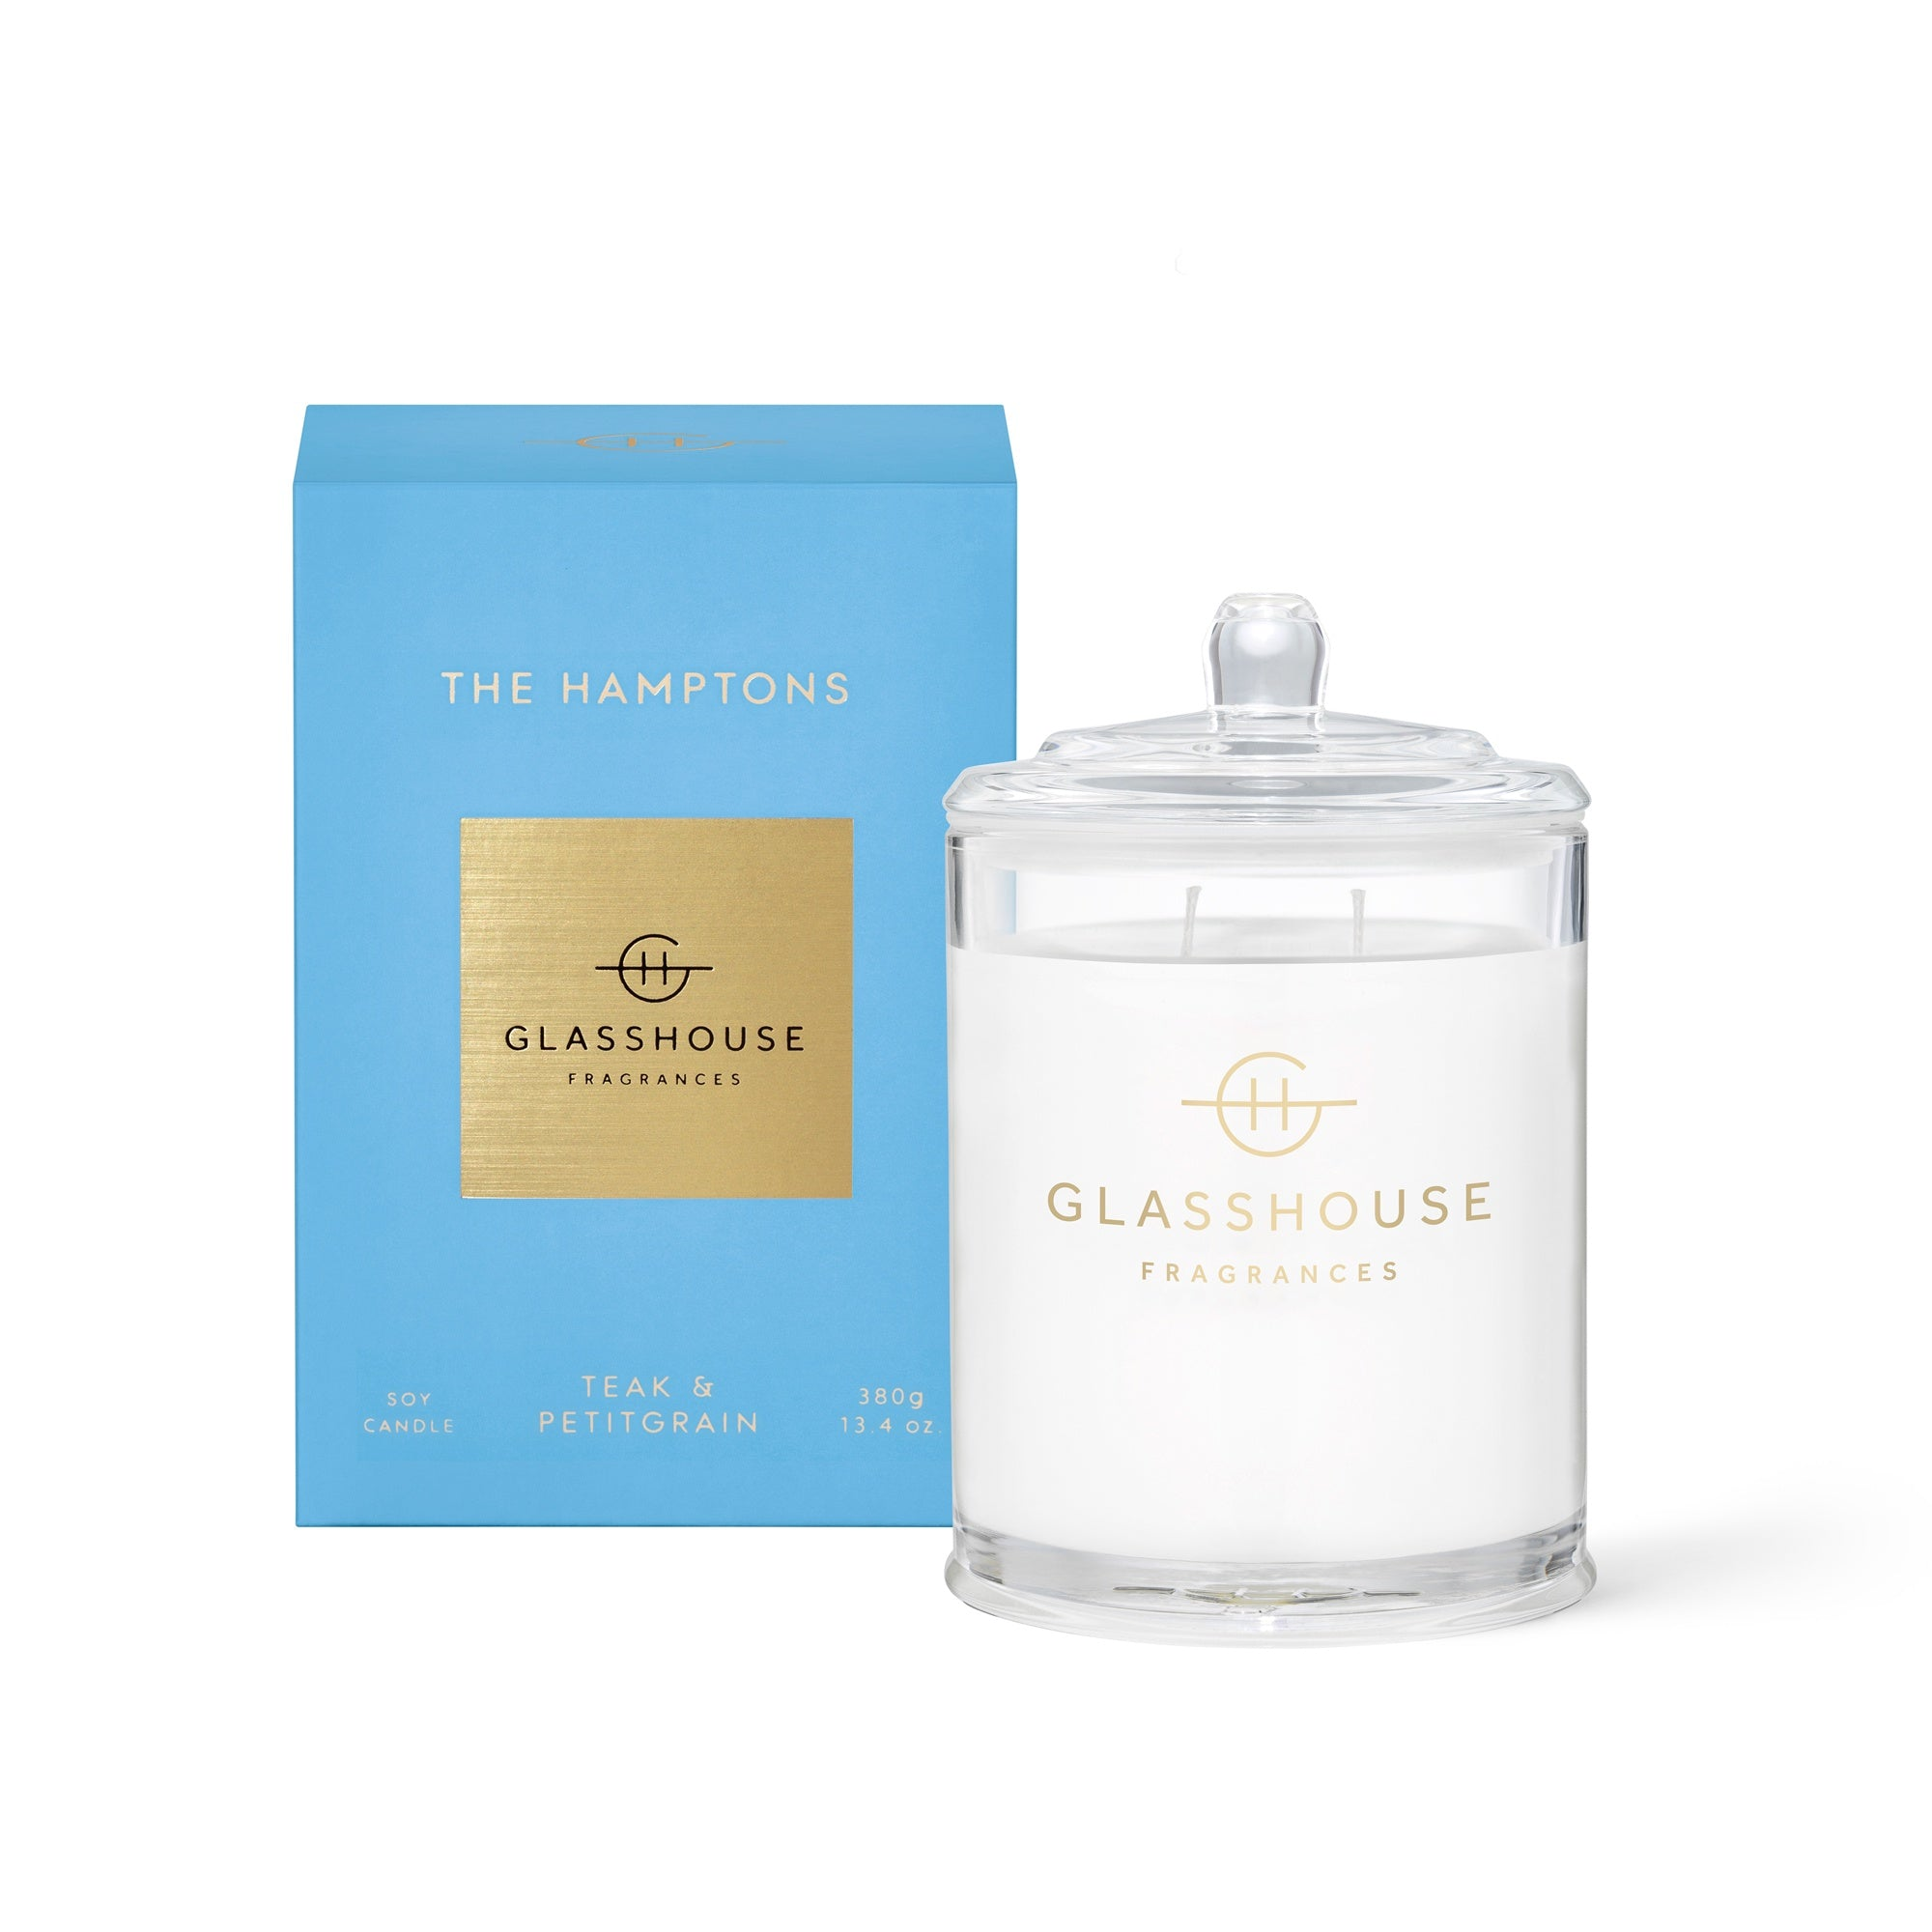 The Hamptons Candle Soy Candle - Teak & Petitgrain